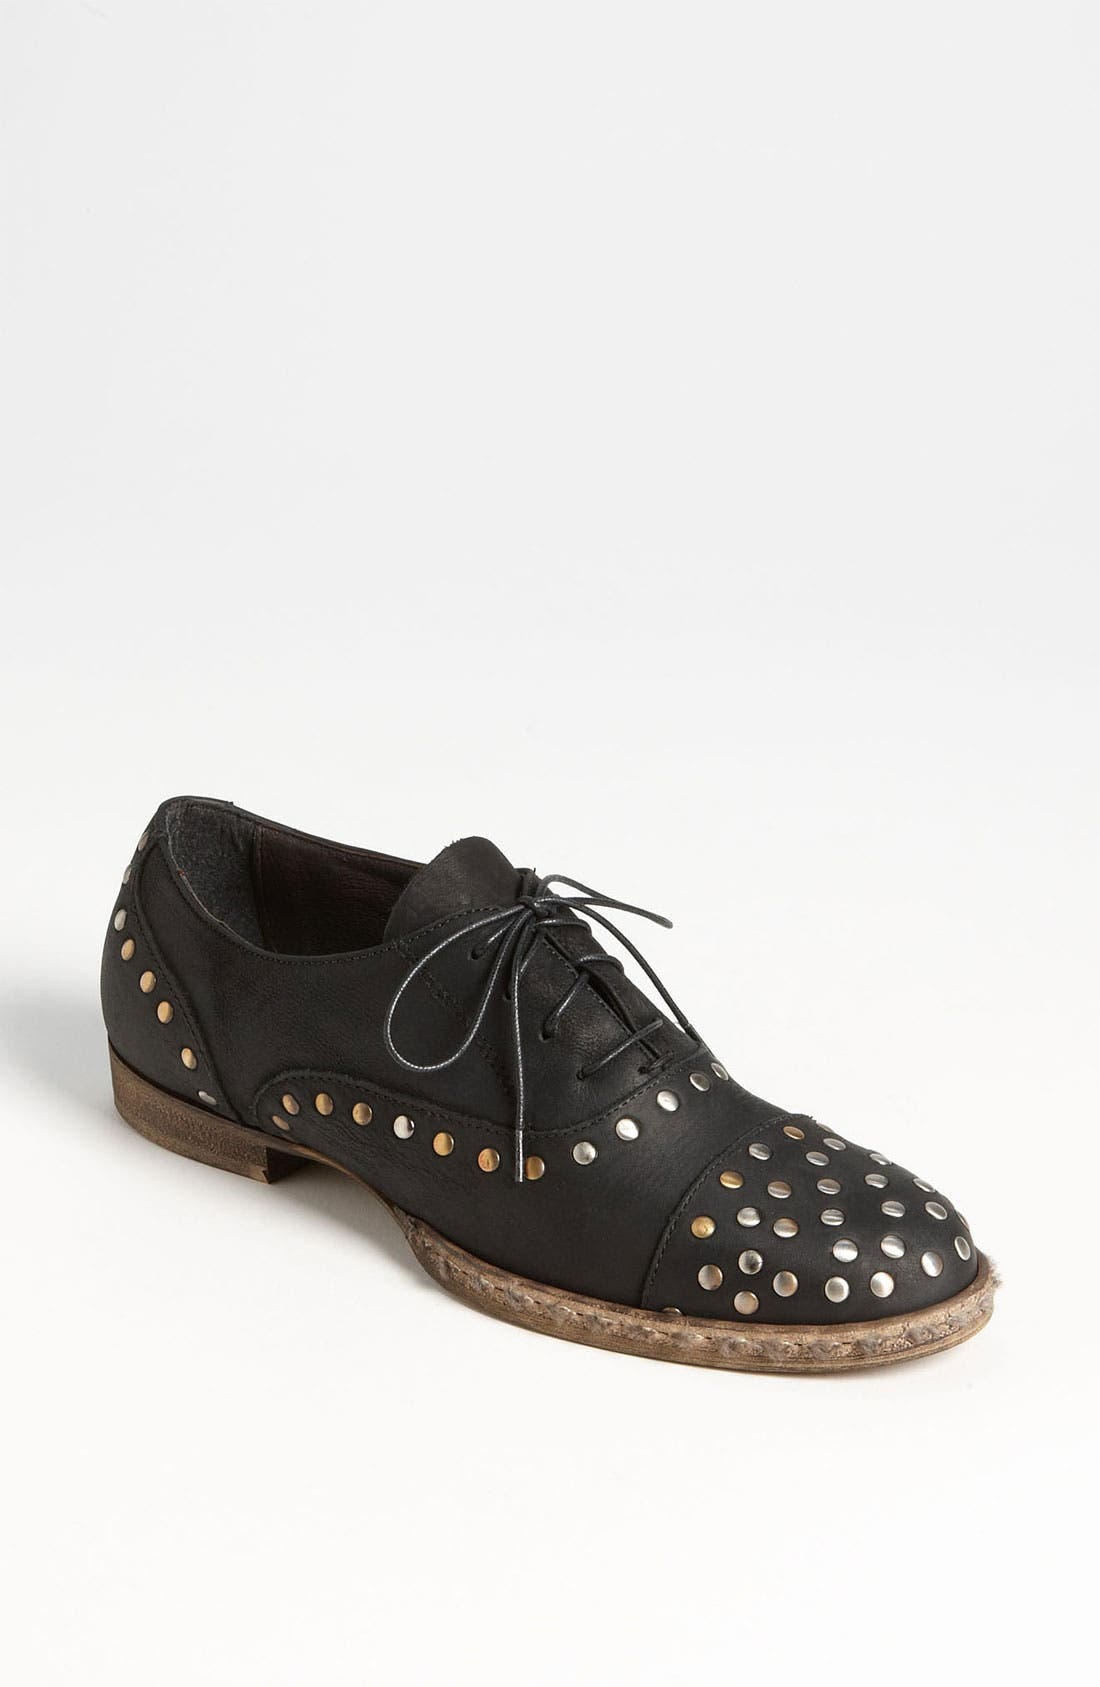 Main Image - Mery Studded Lace-Up Oxford